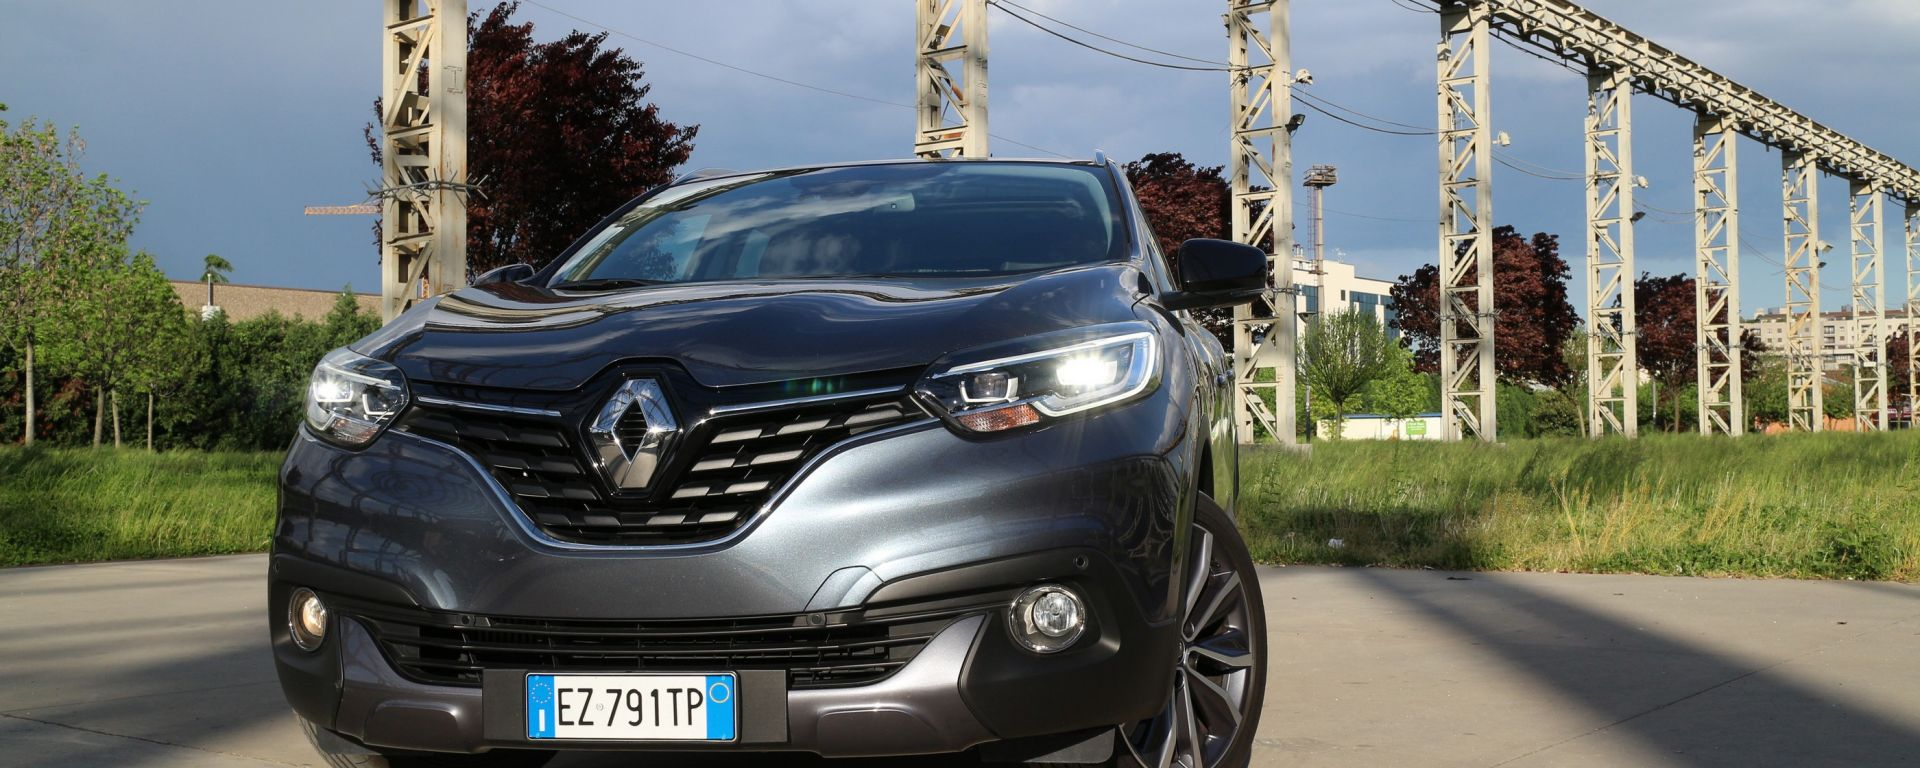 test drive renault kadjar dci 110 cv energy bose la prova su strada motorbox. Black Bedroom Furniture Sets. Home Design Ideas